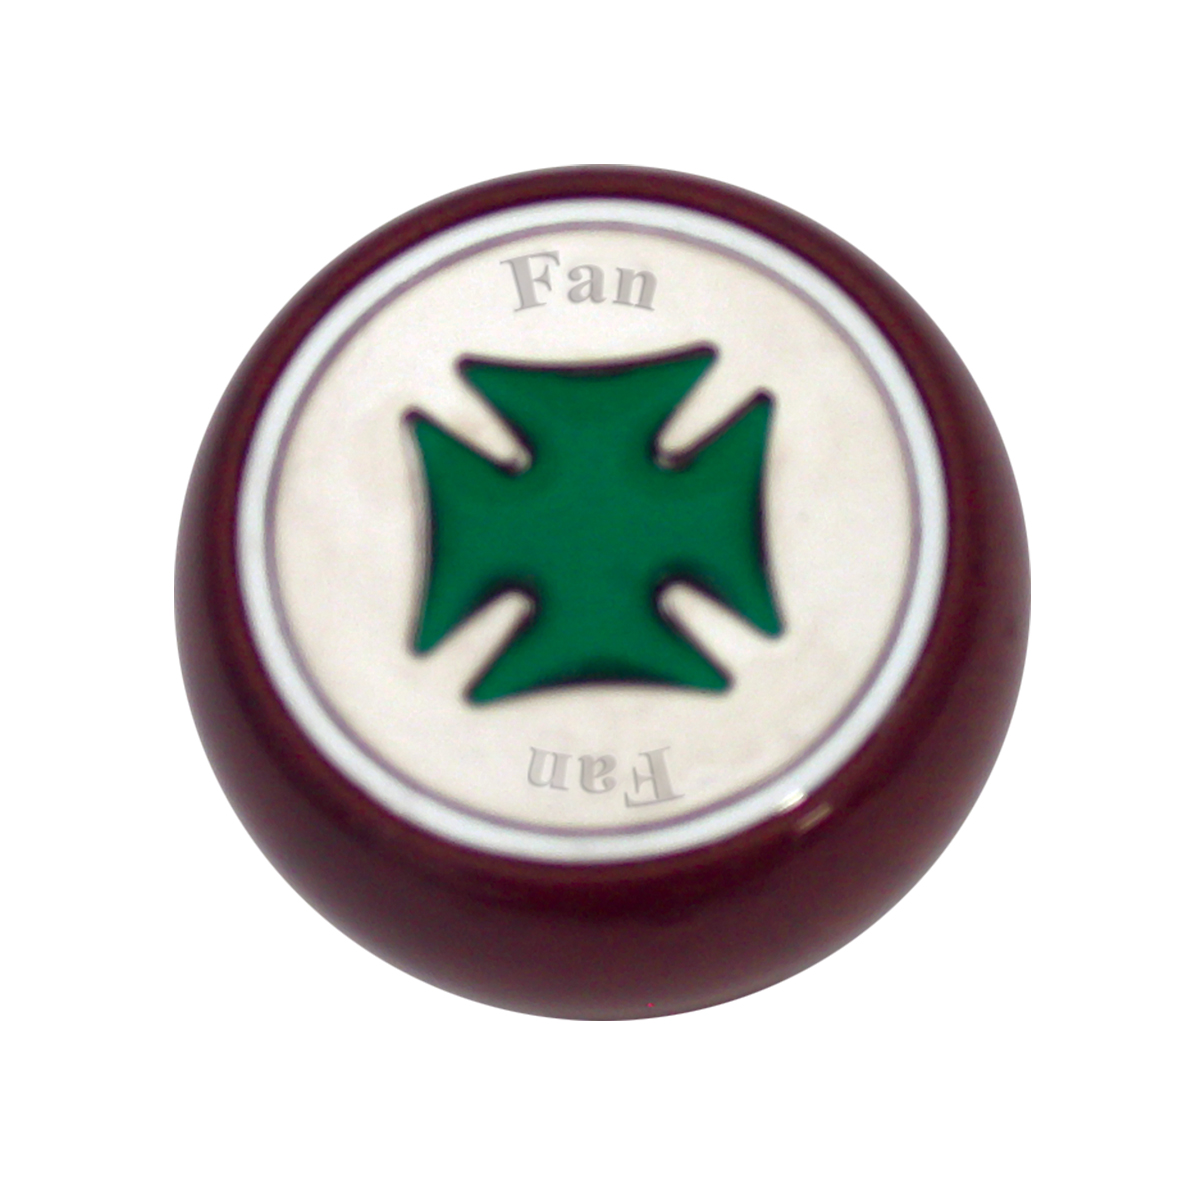 95463 Green Iron Cross Dashboard Control Knob w/ Fan Script